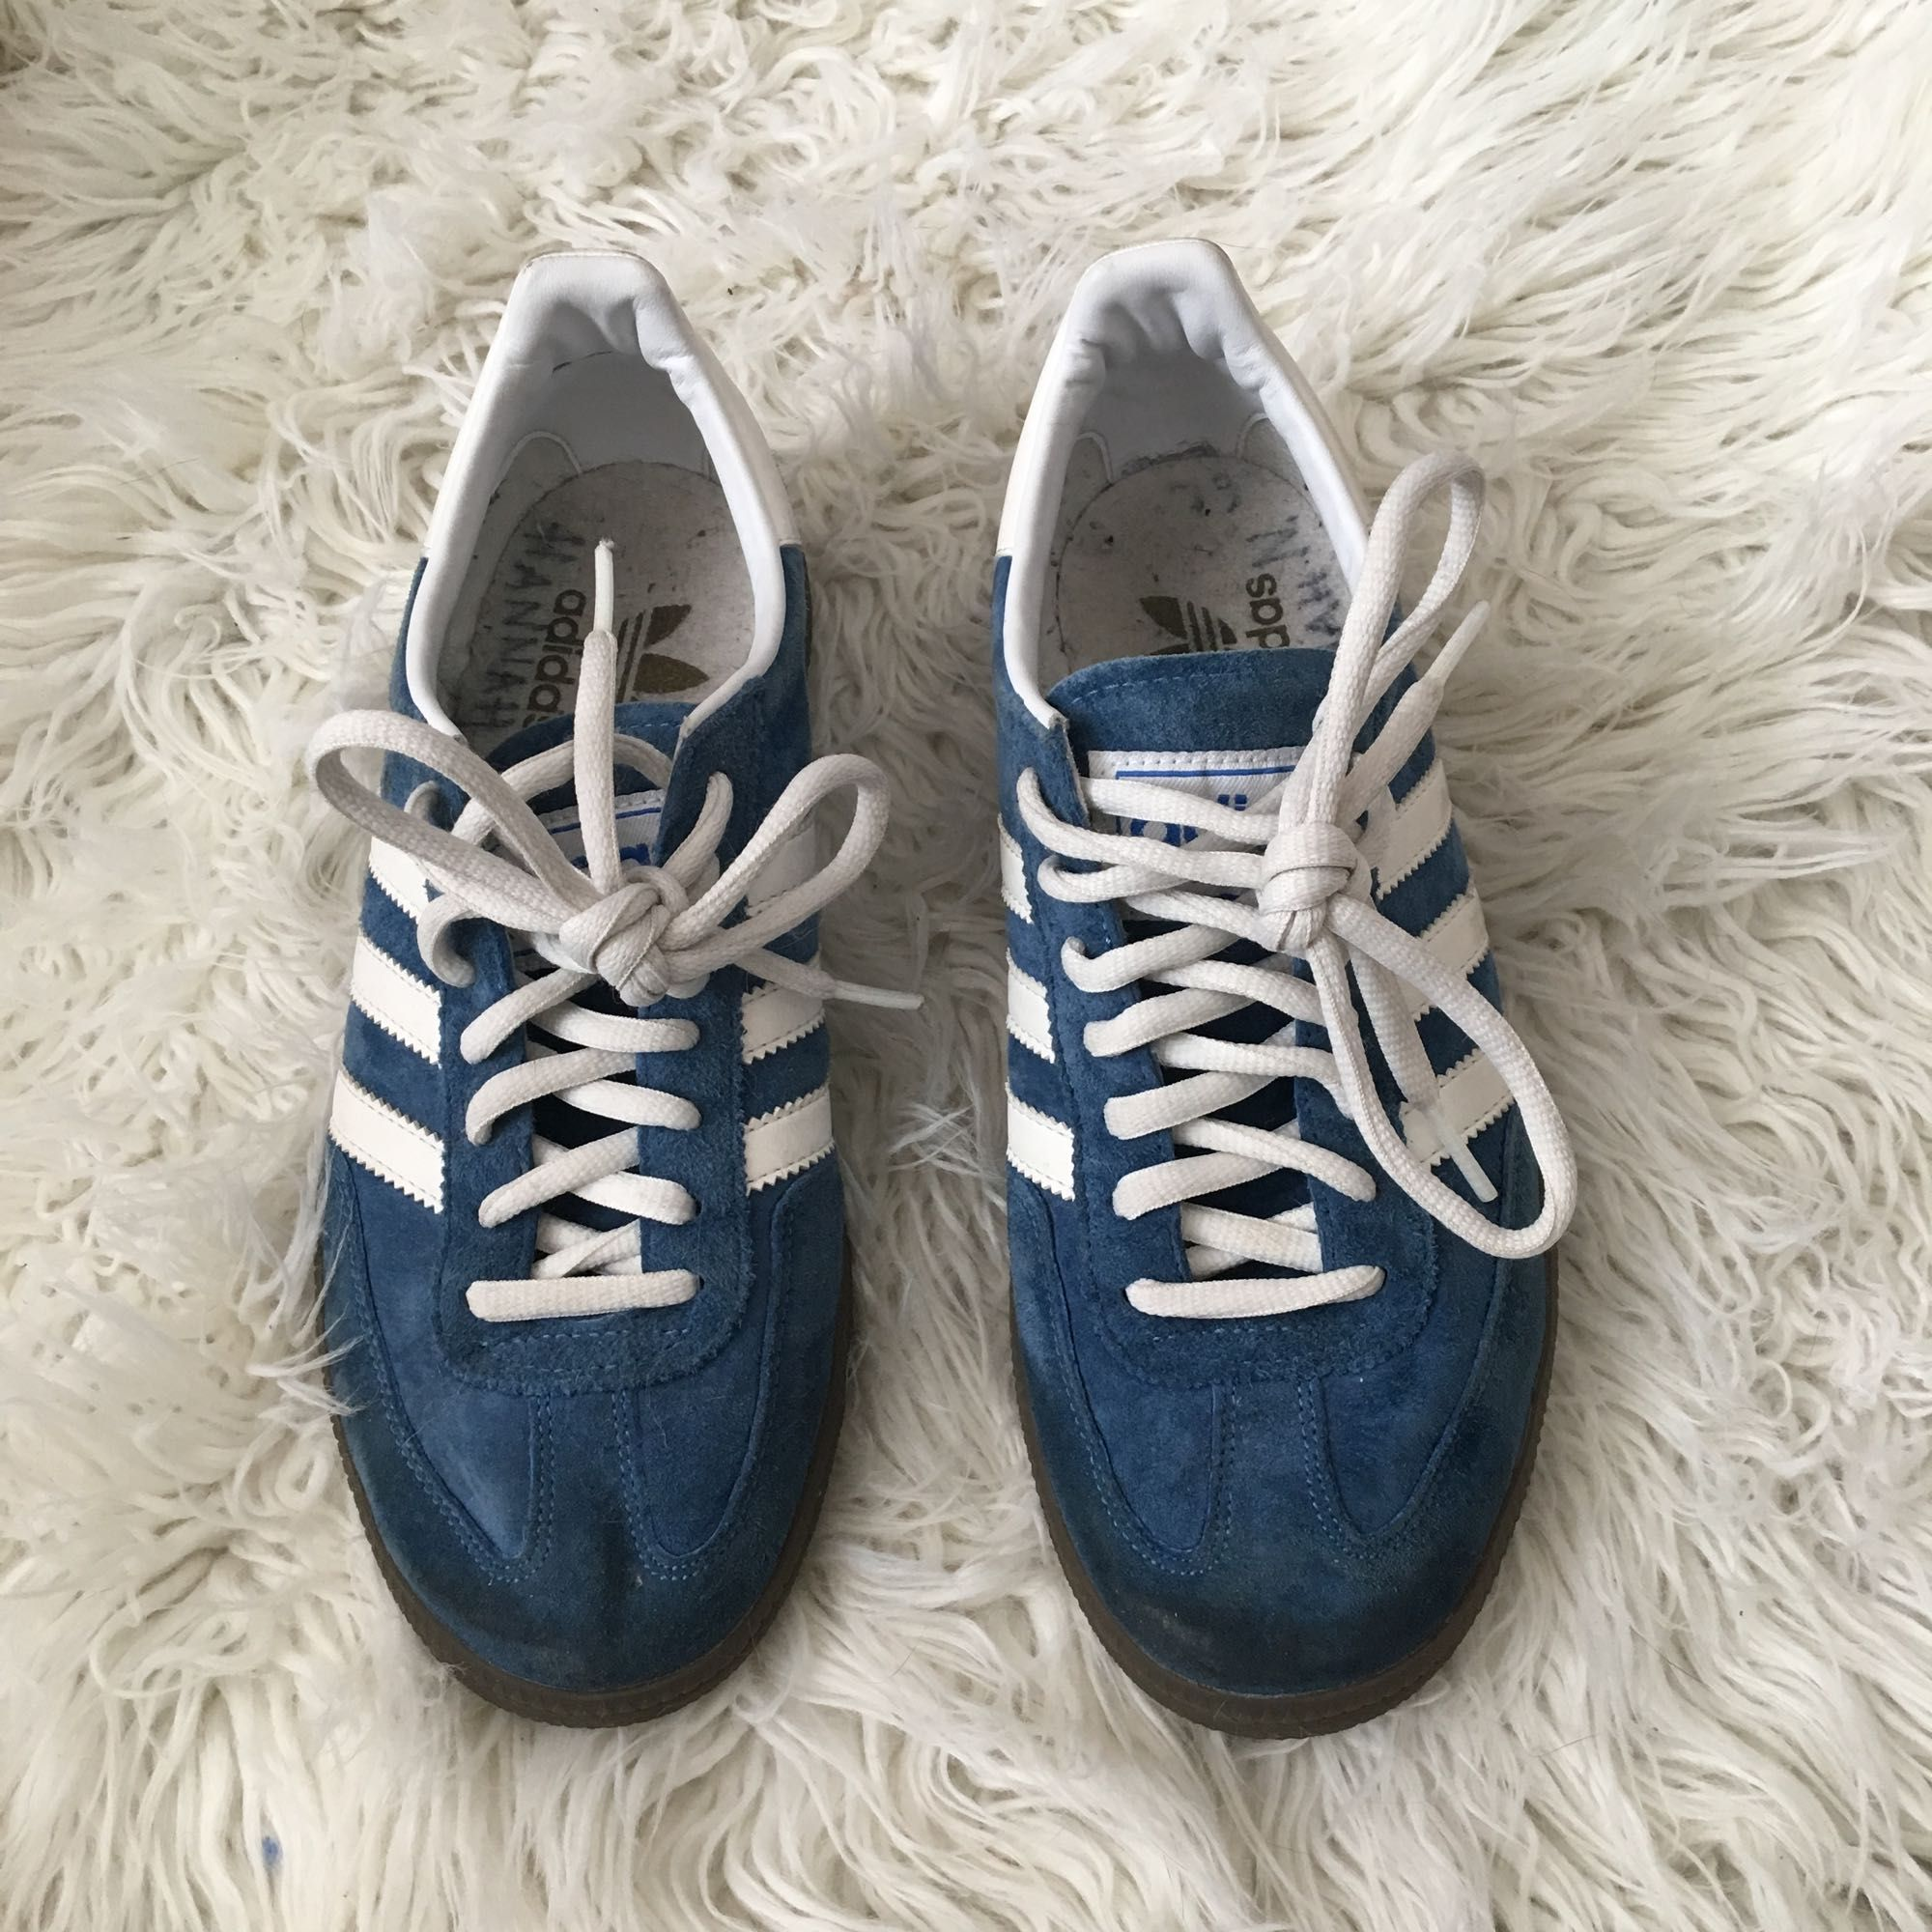 Hand Stockholm In Von Second Schuhe Adidas Xfnhp10 Nm8nvw0O